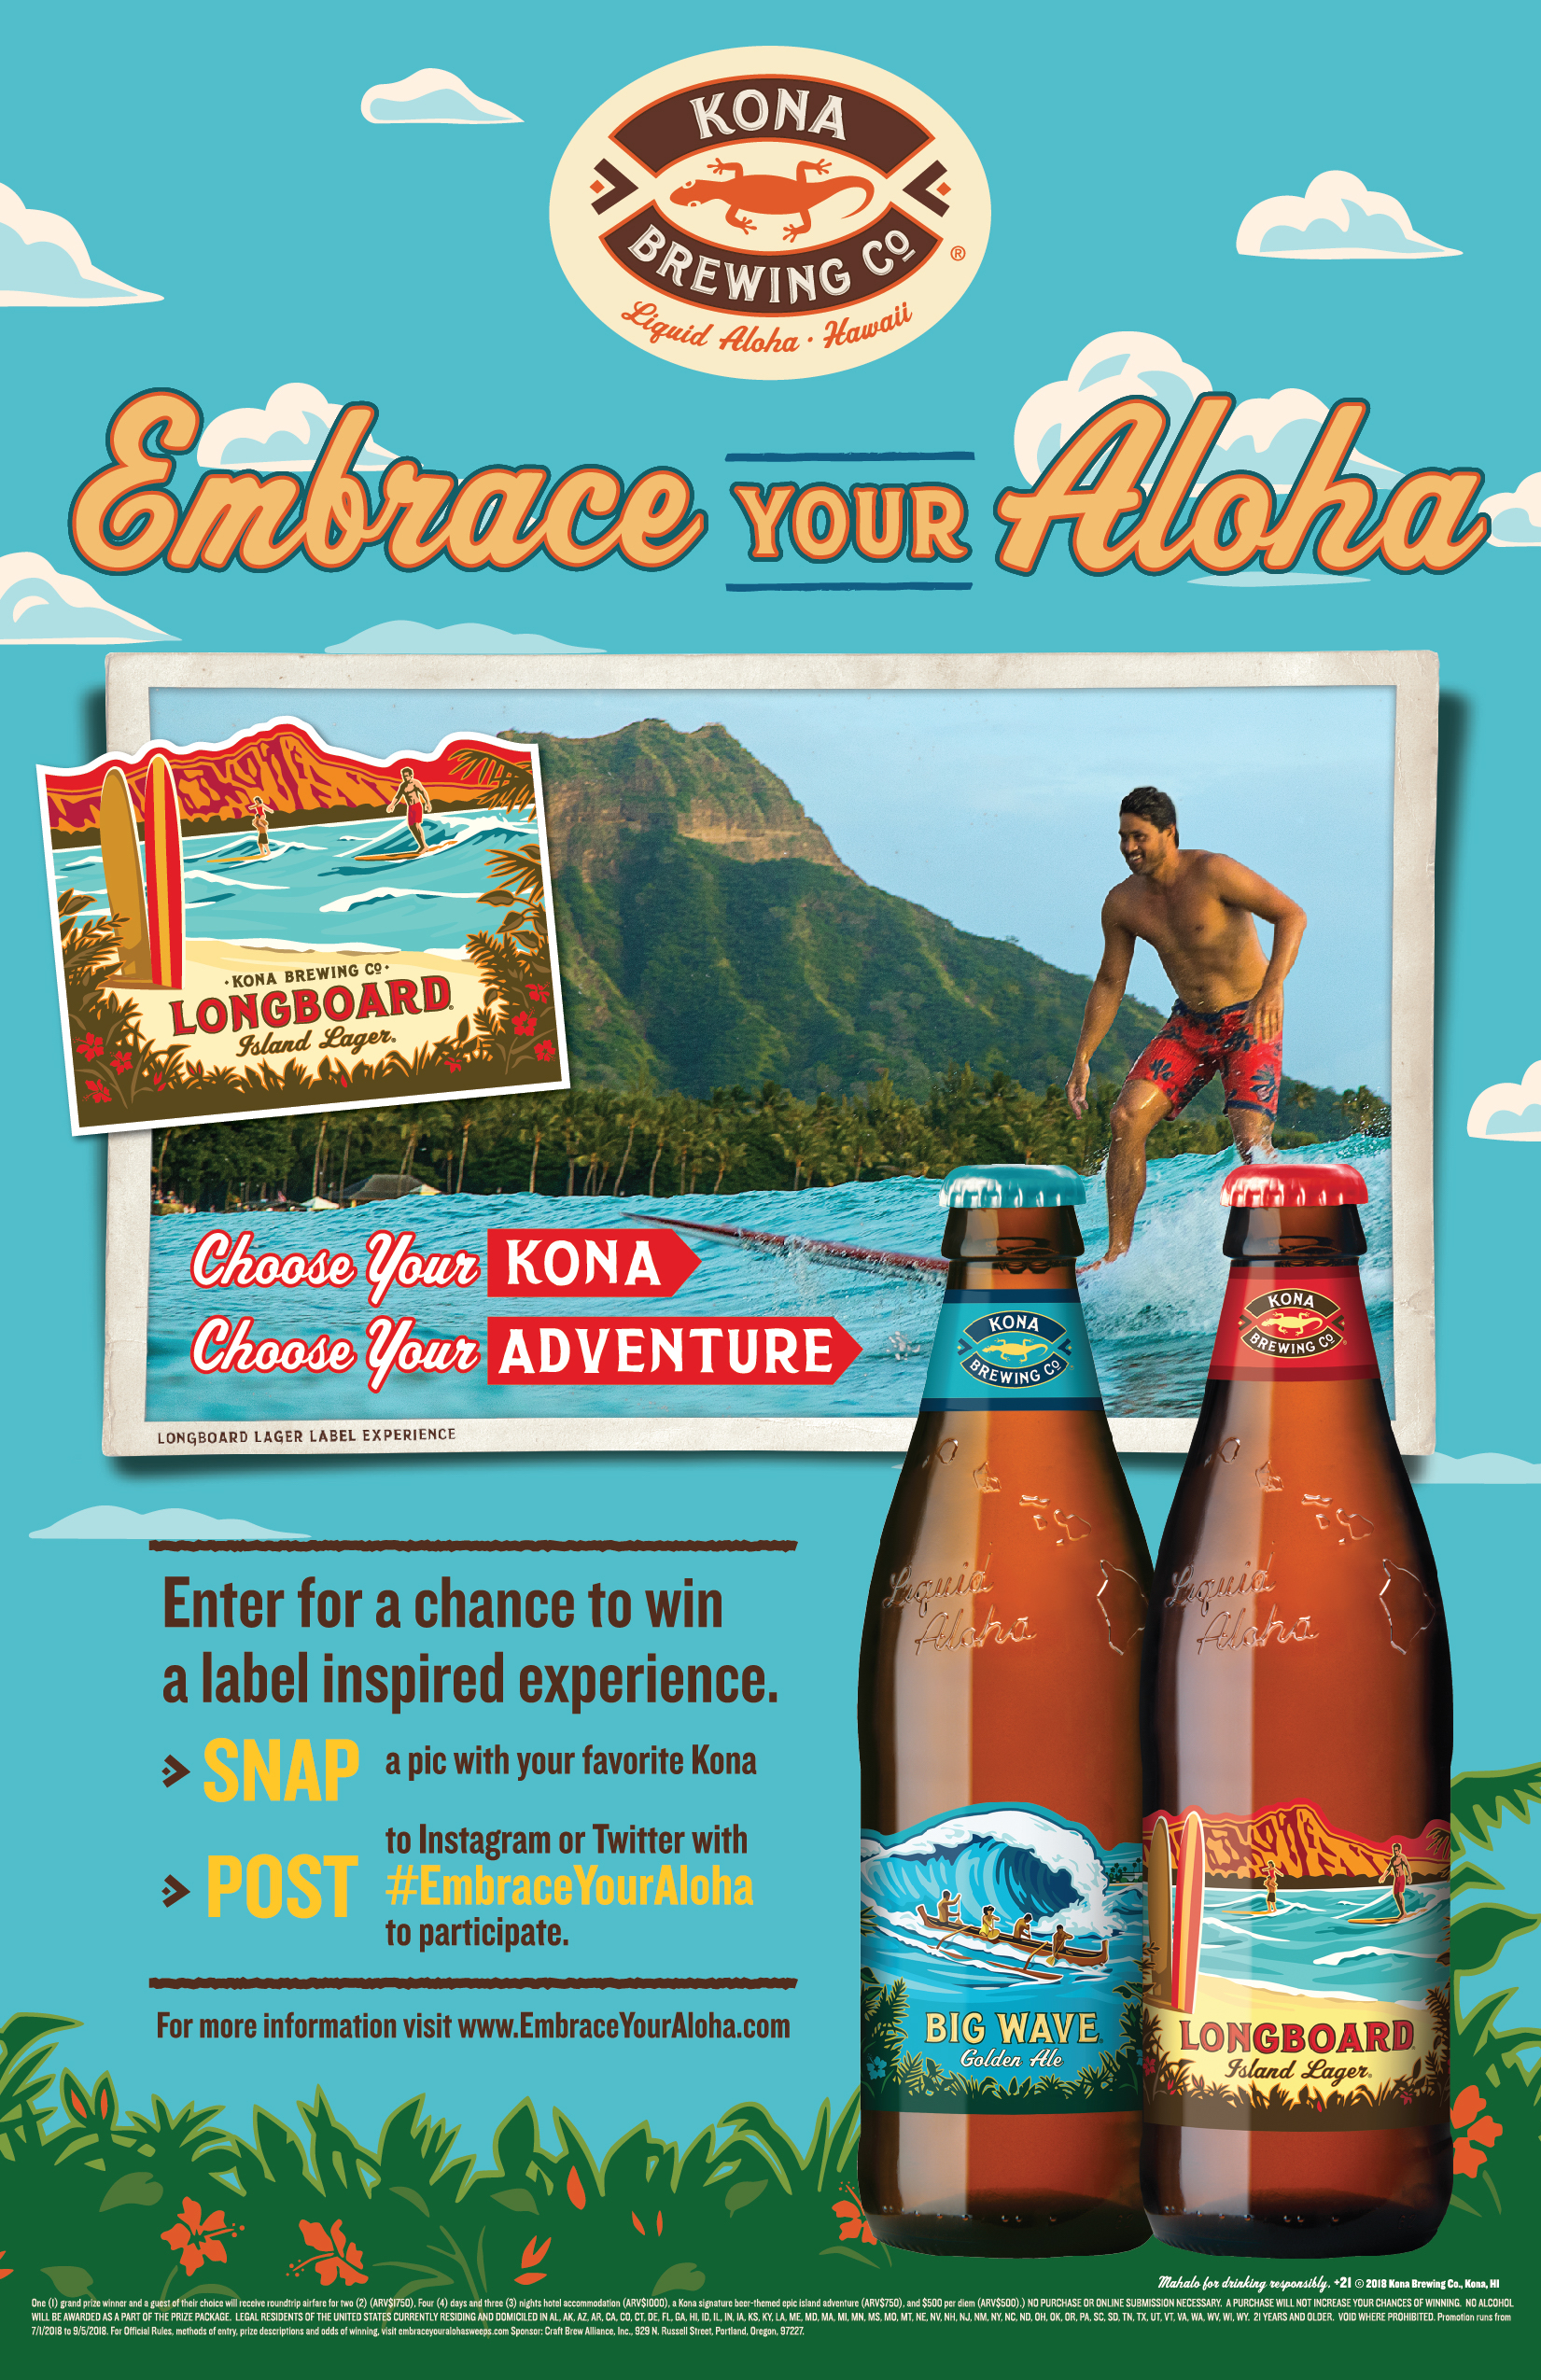 Kona Brewing Announces New Summer Campaign: Embrace Your Aloha